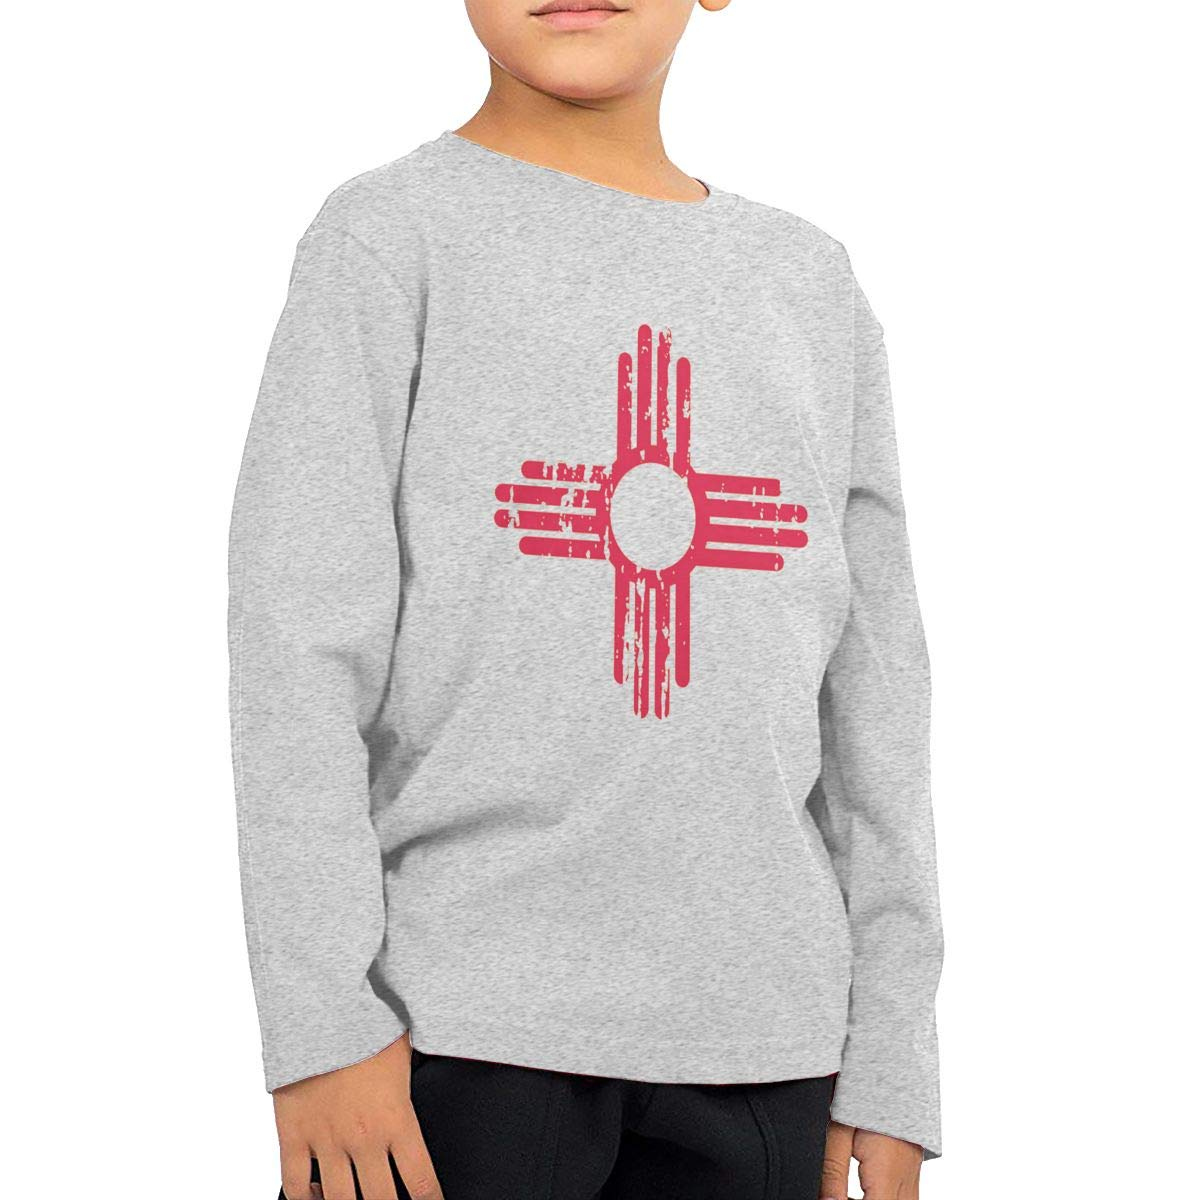 CY SHOP New Mexico Sun Symbol Childrens Boys Cotton Long Sleeve T Shirts